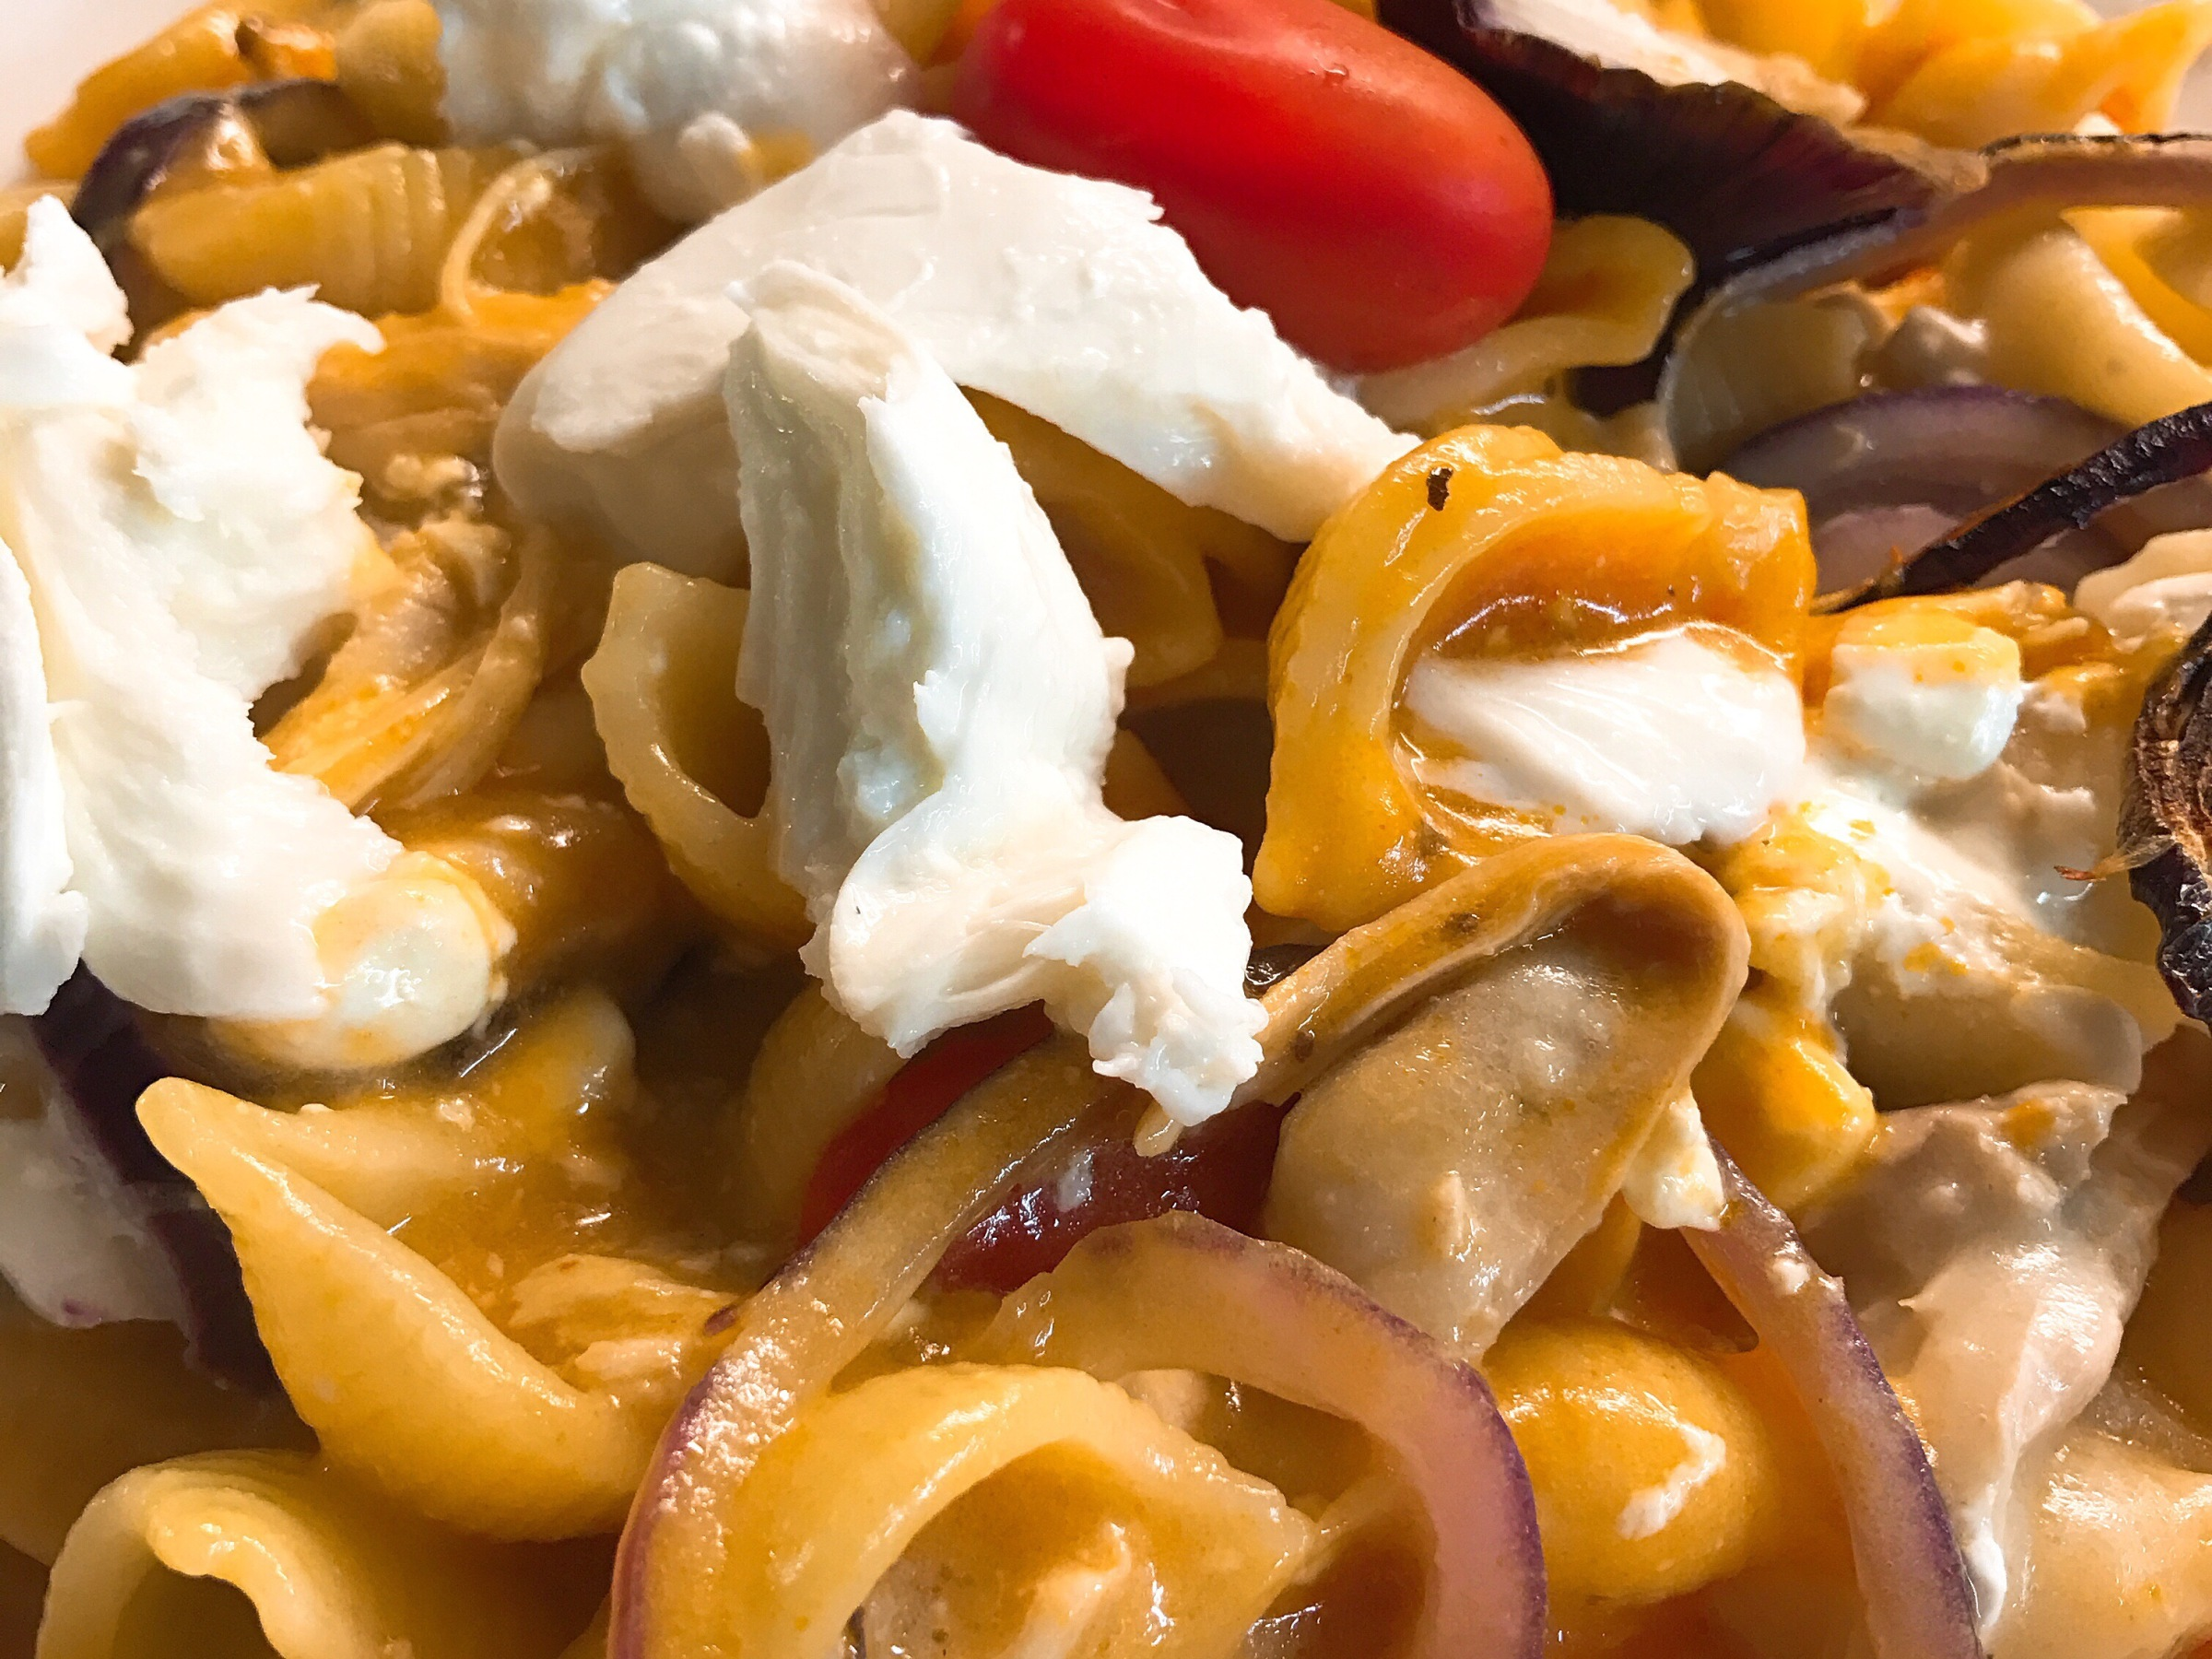 Chicken pasta bake with Cream of Tomato Soup